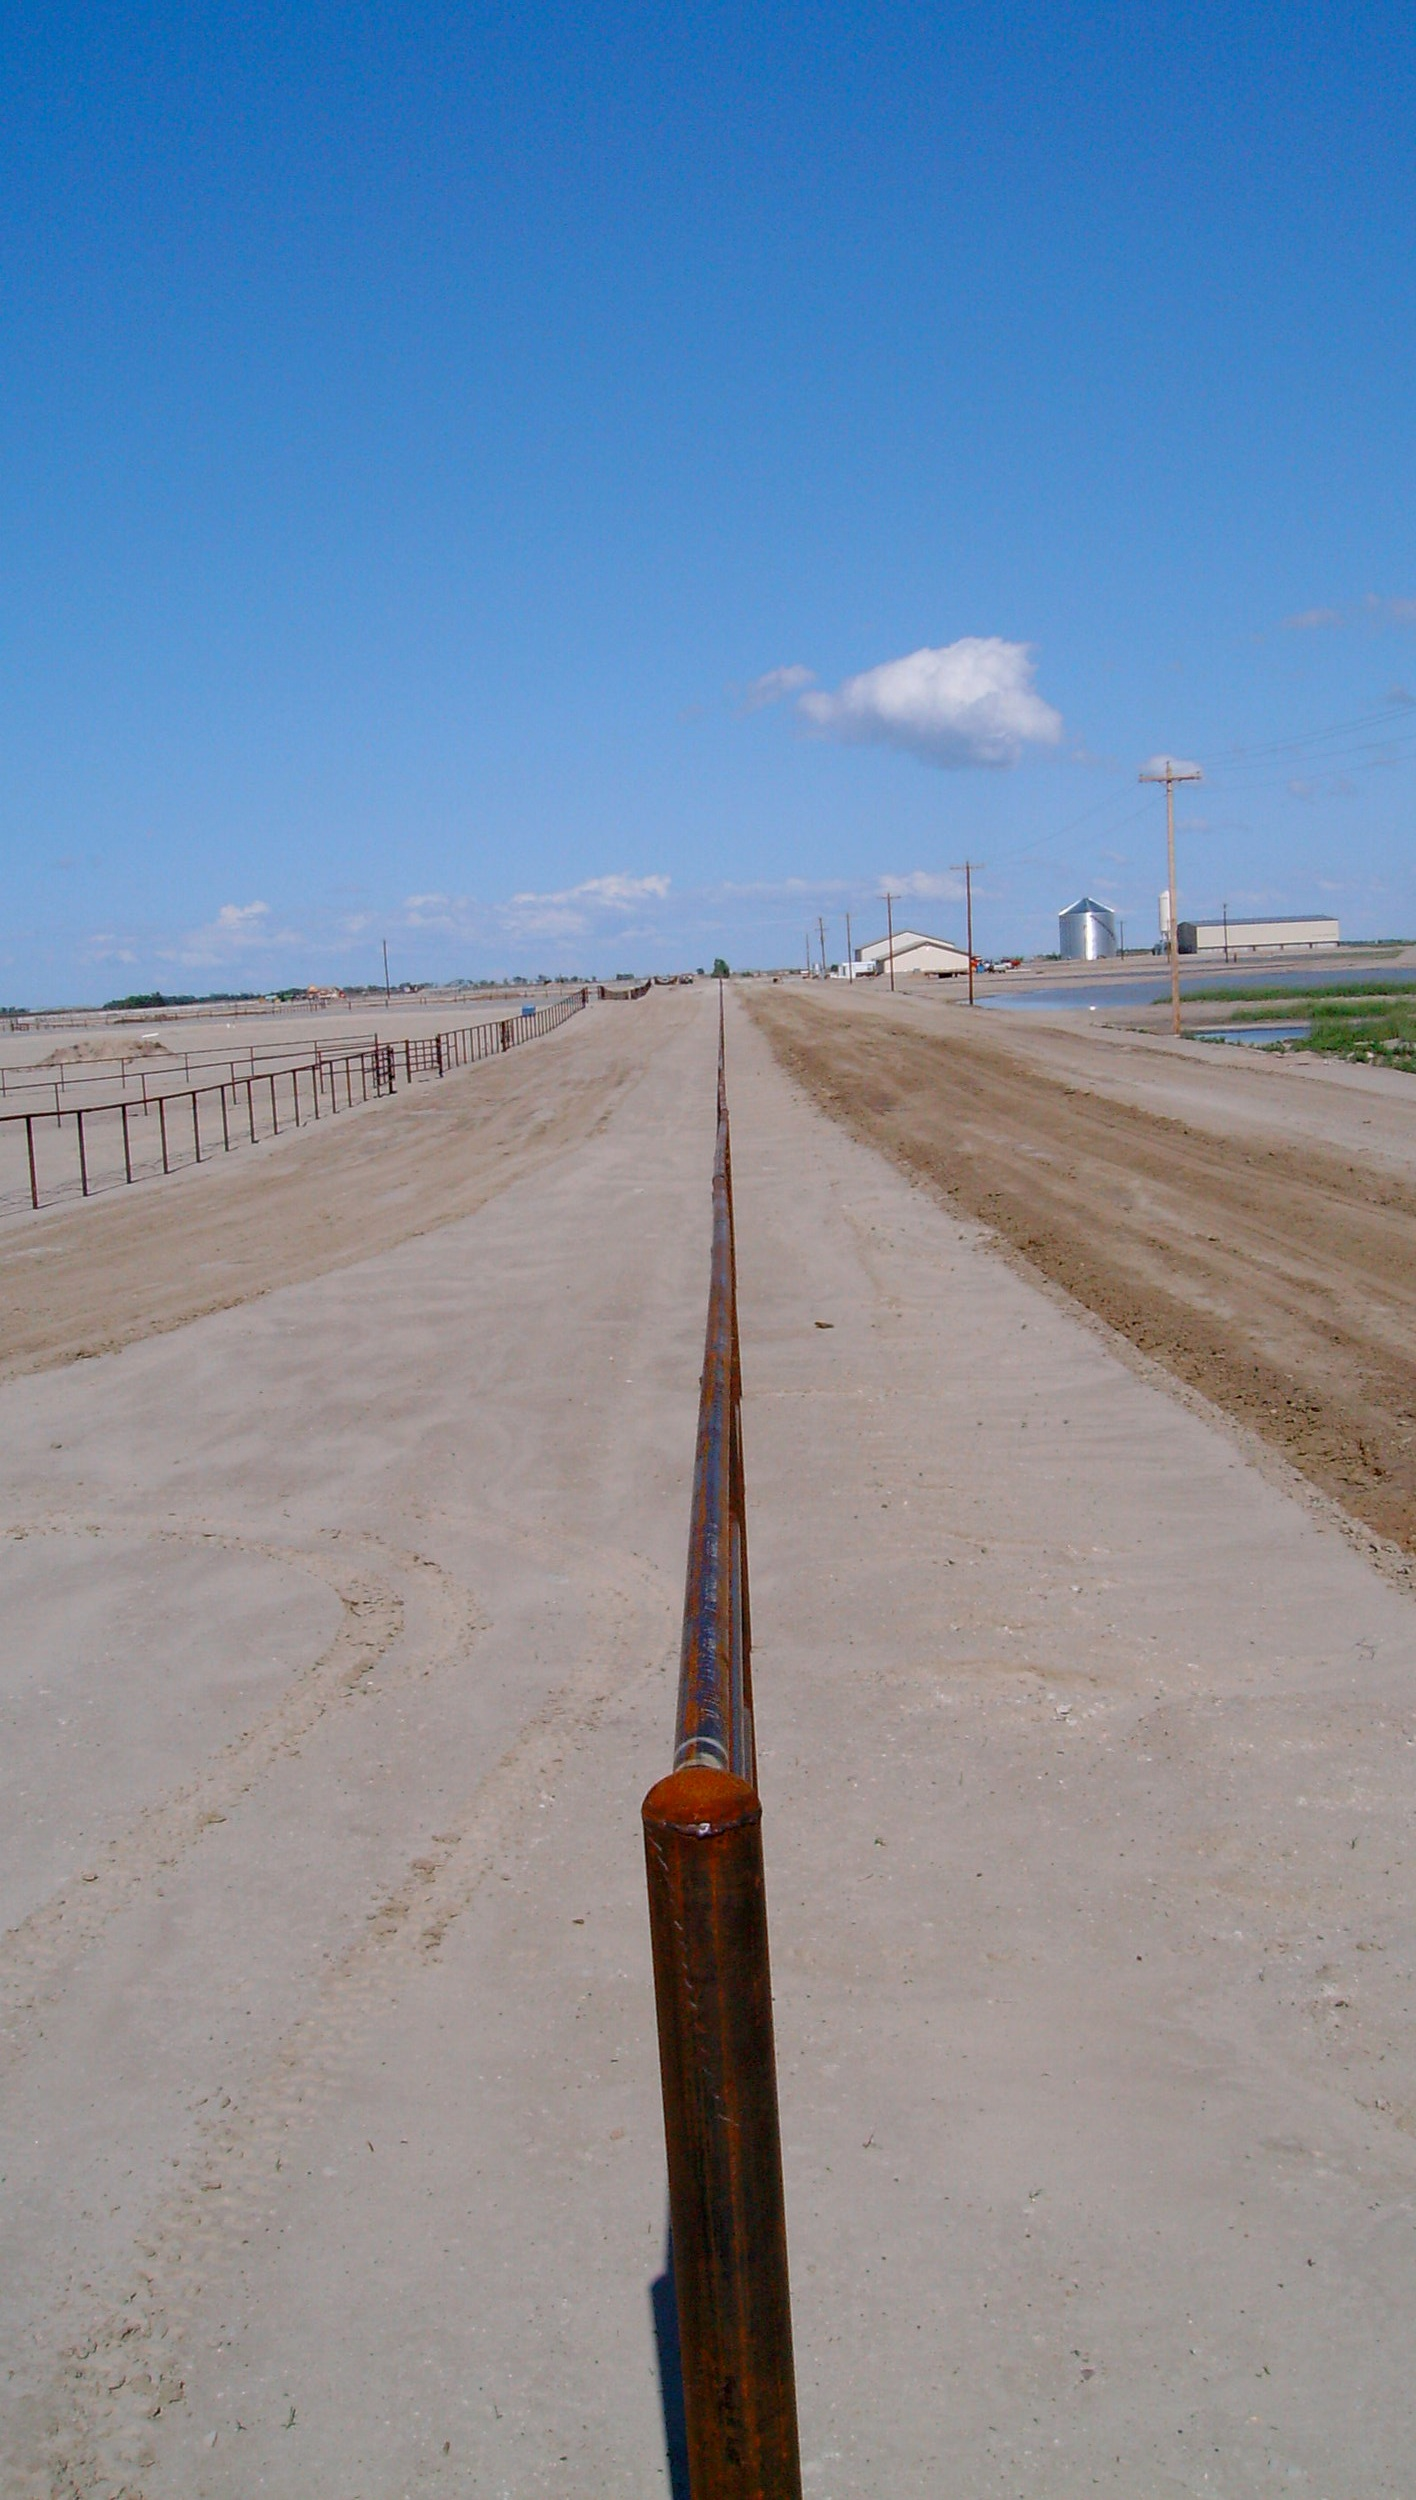 The top rail on long stretch of cable fence.